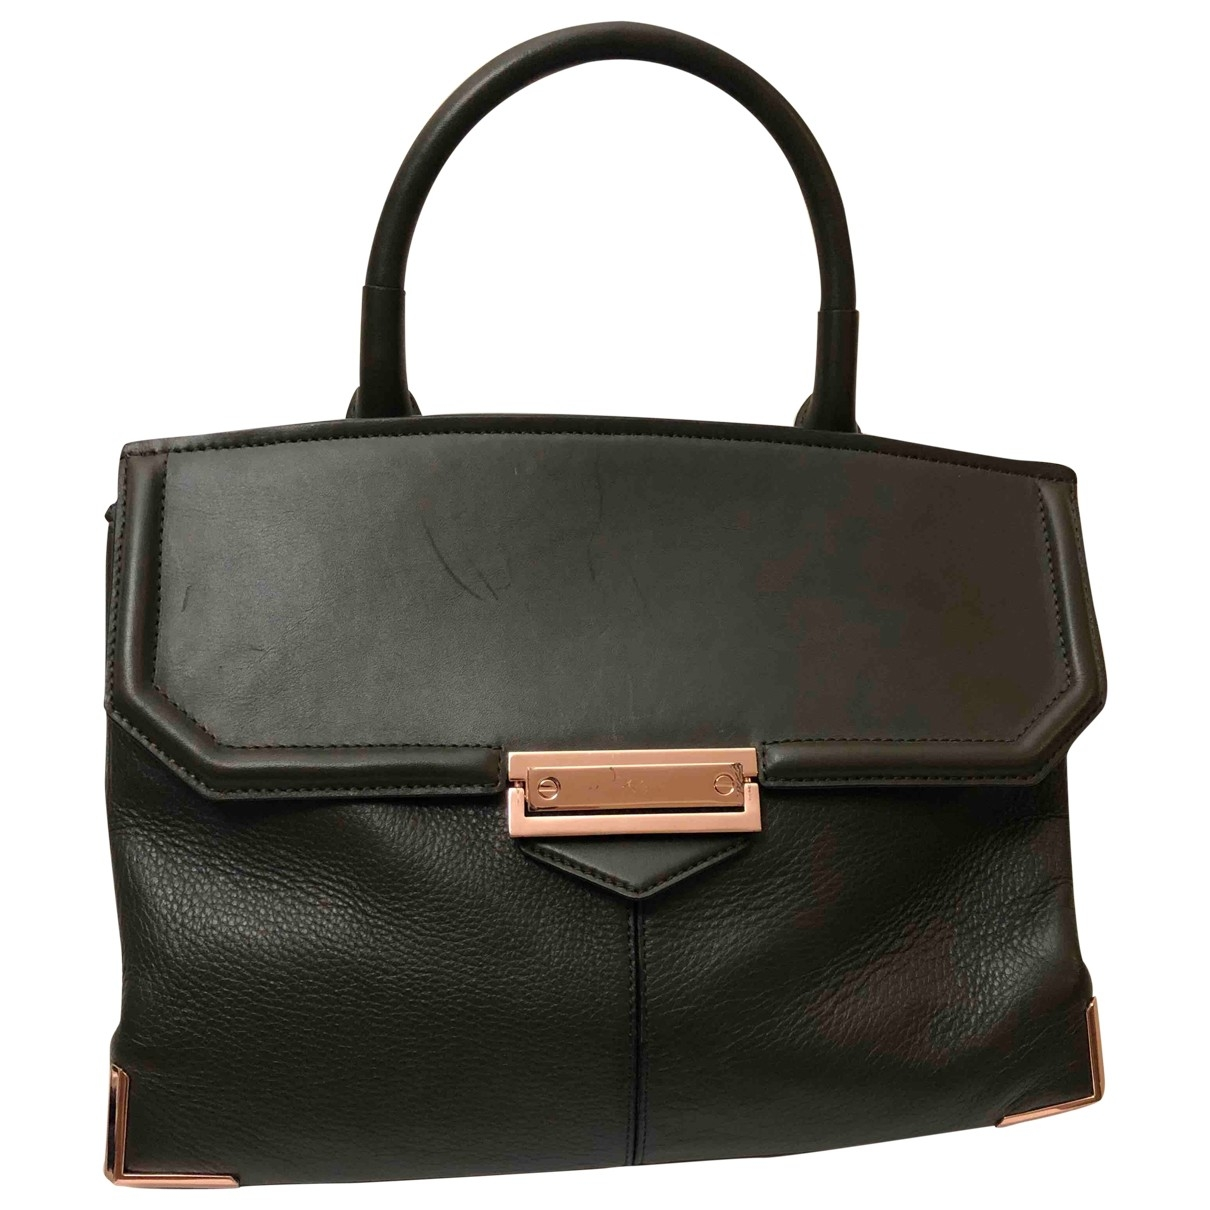 Alexander Wang \N Green Leather handbag for Women \N